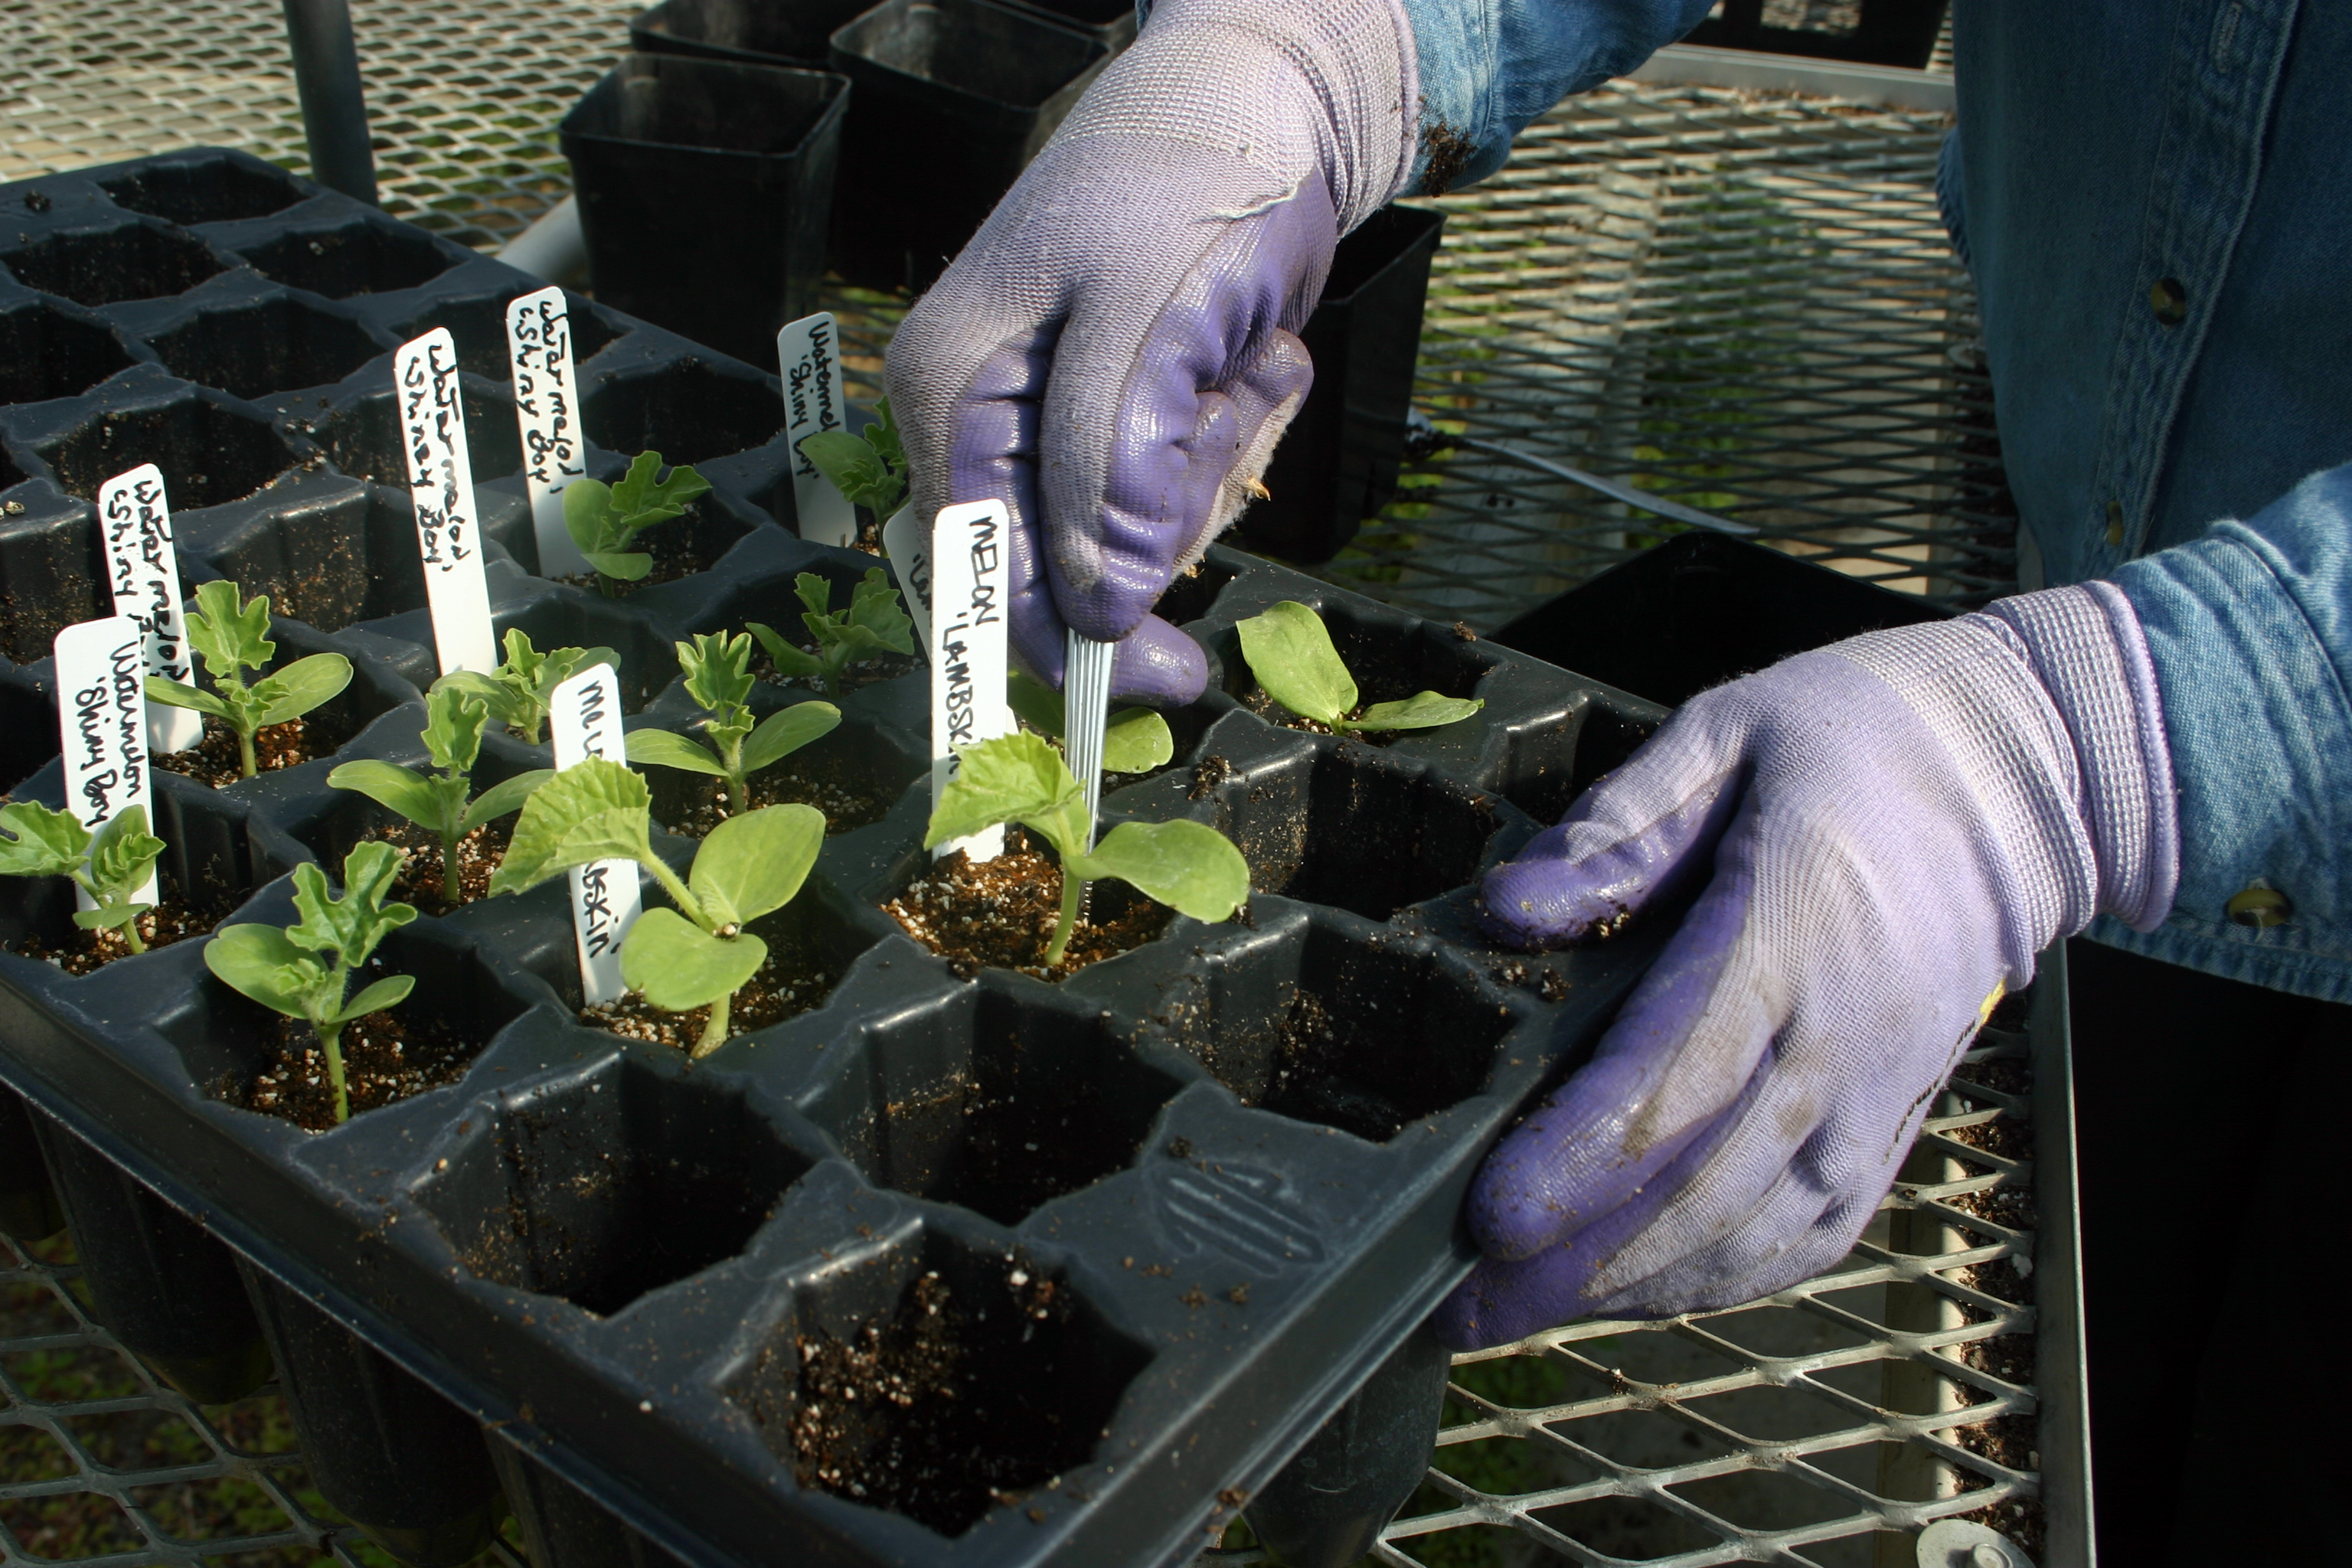 Warm weather crops are more successful if started indoors in a seed flat.